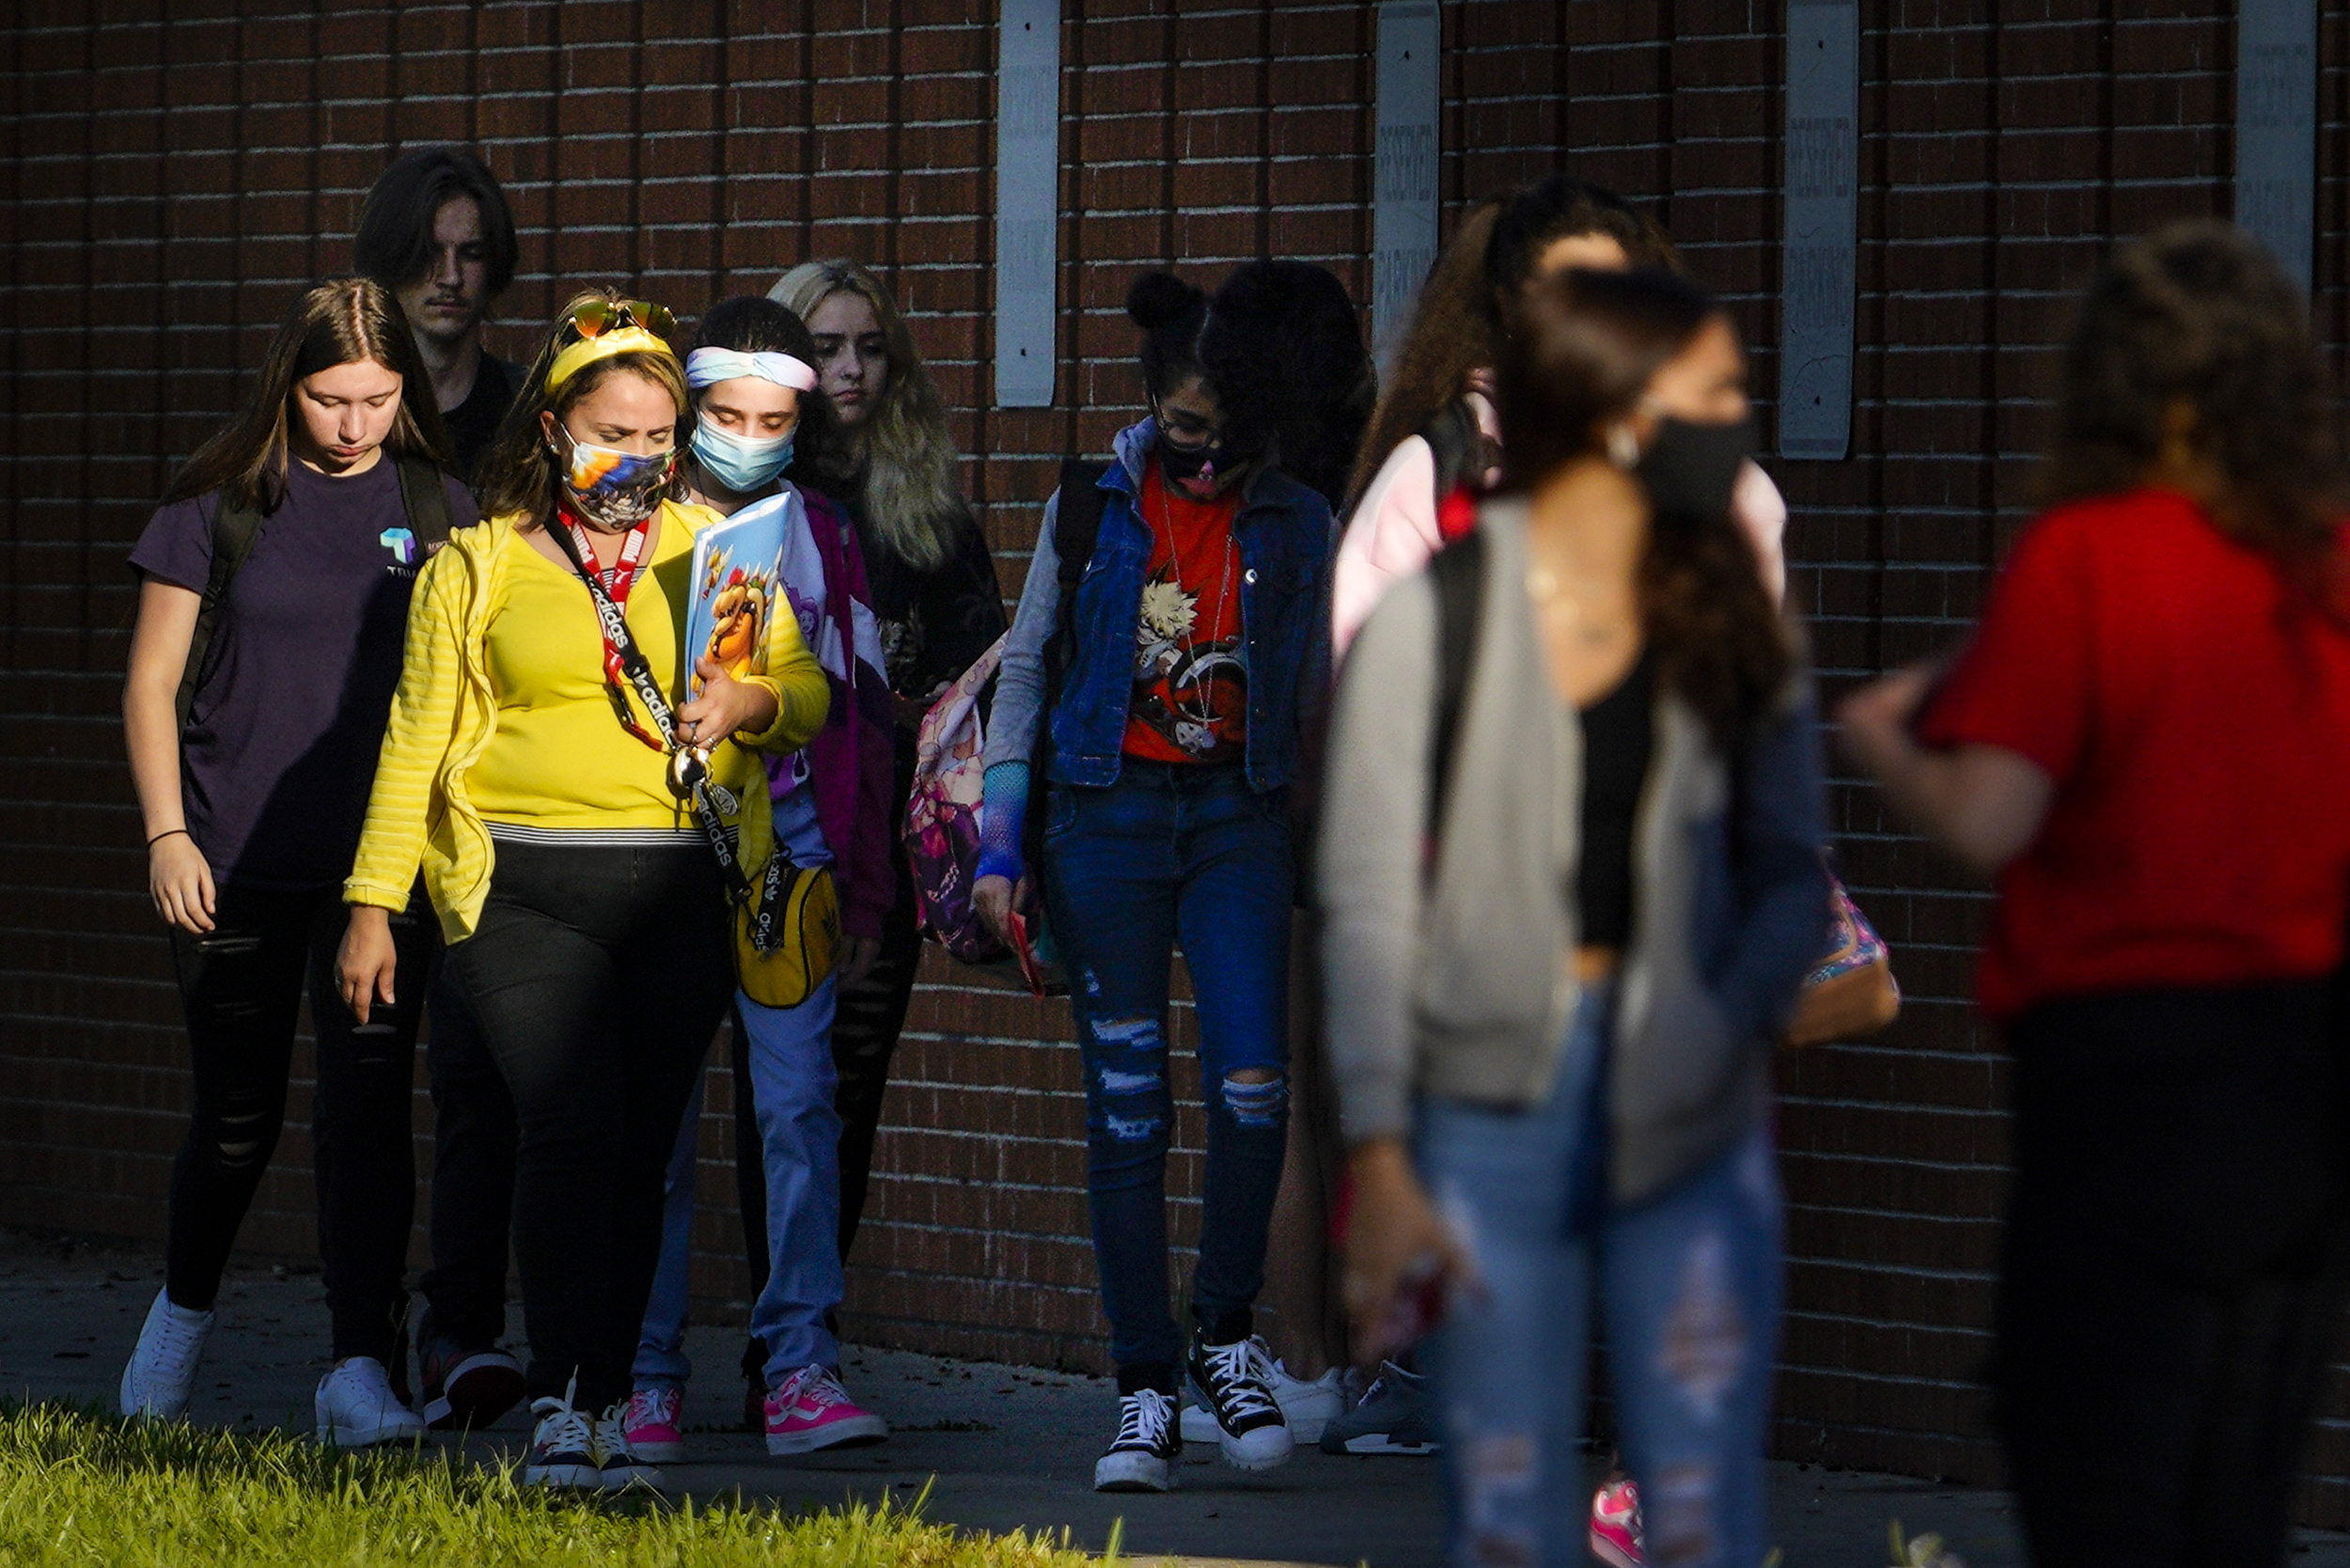 Over 5,000 students quarantine or isolate because of Covid in Florida school district